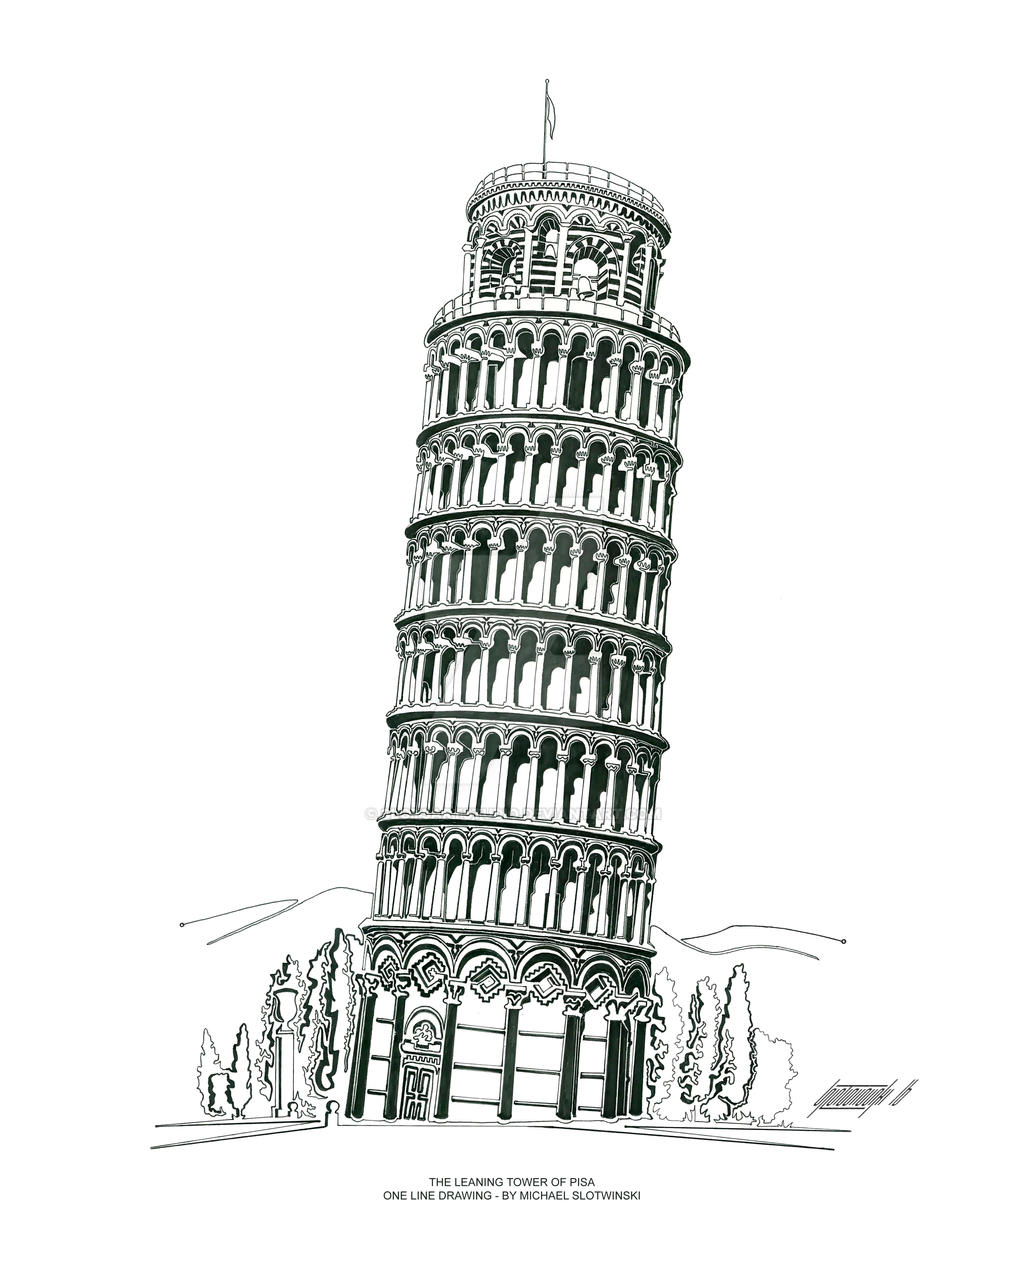 The Leaning Tower of Pisa - One Line Drawing by SlotsArtStudio